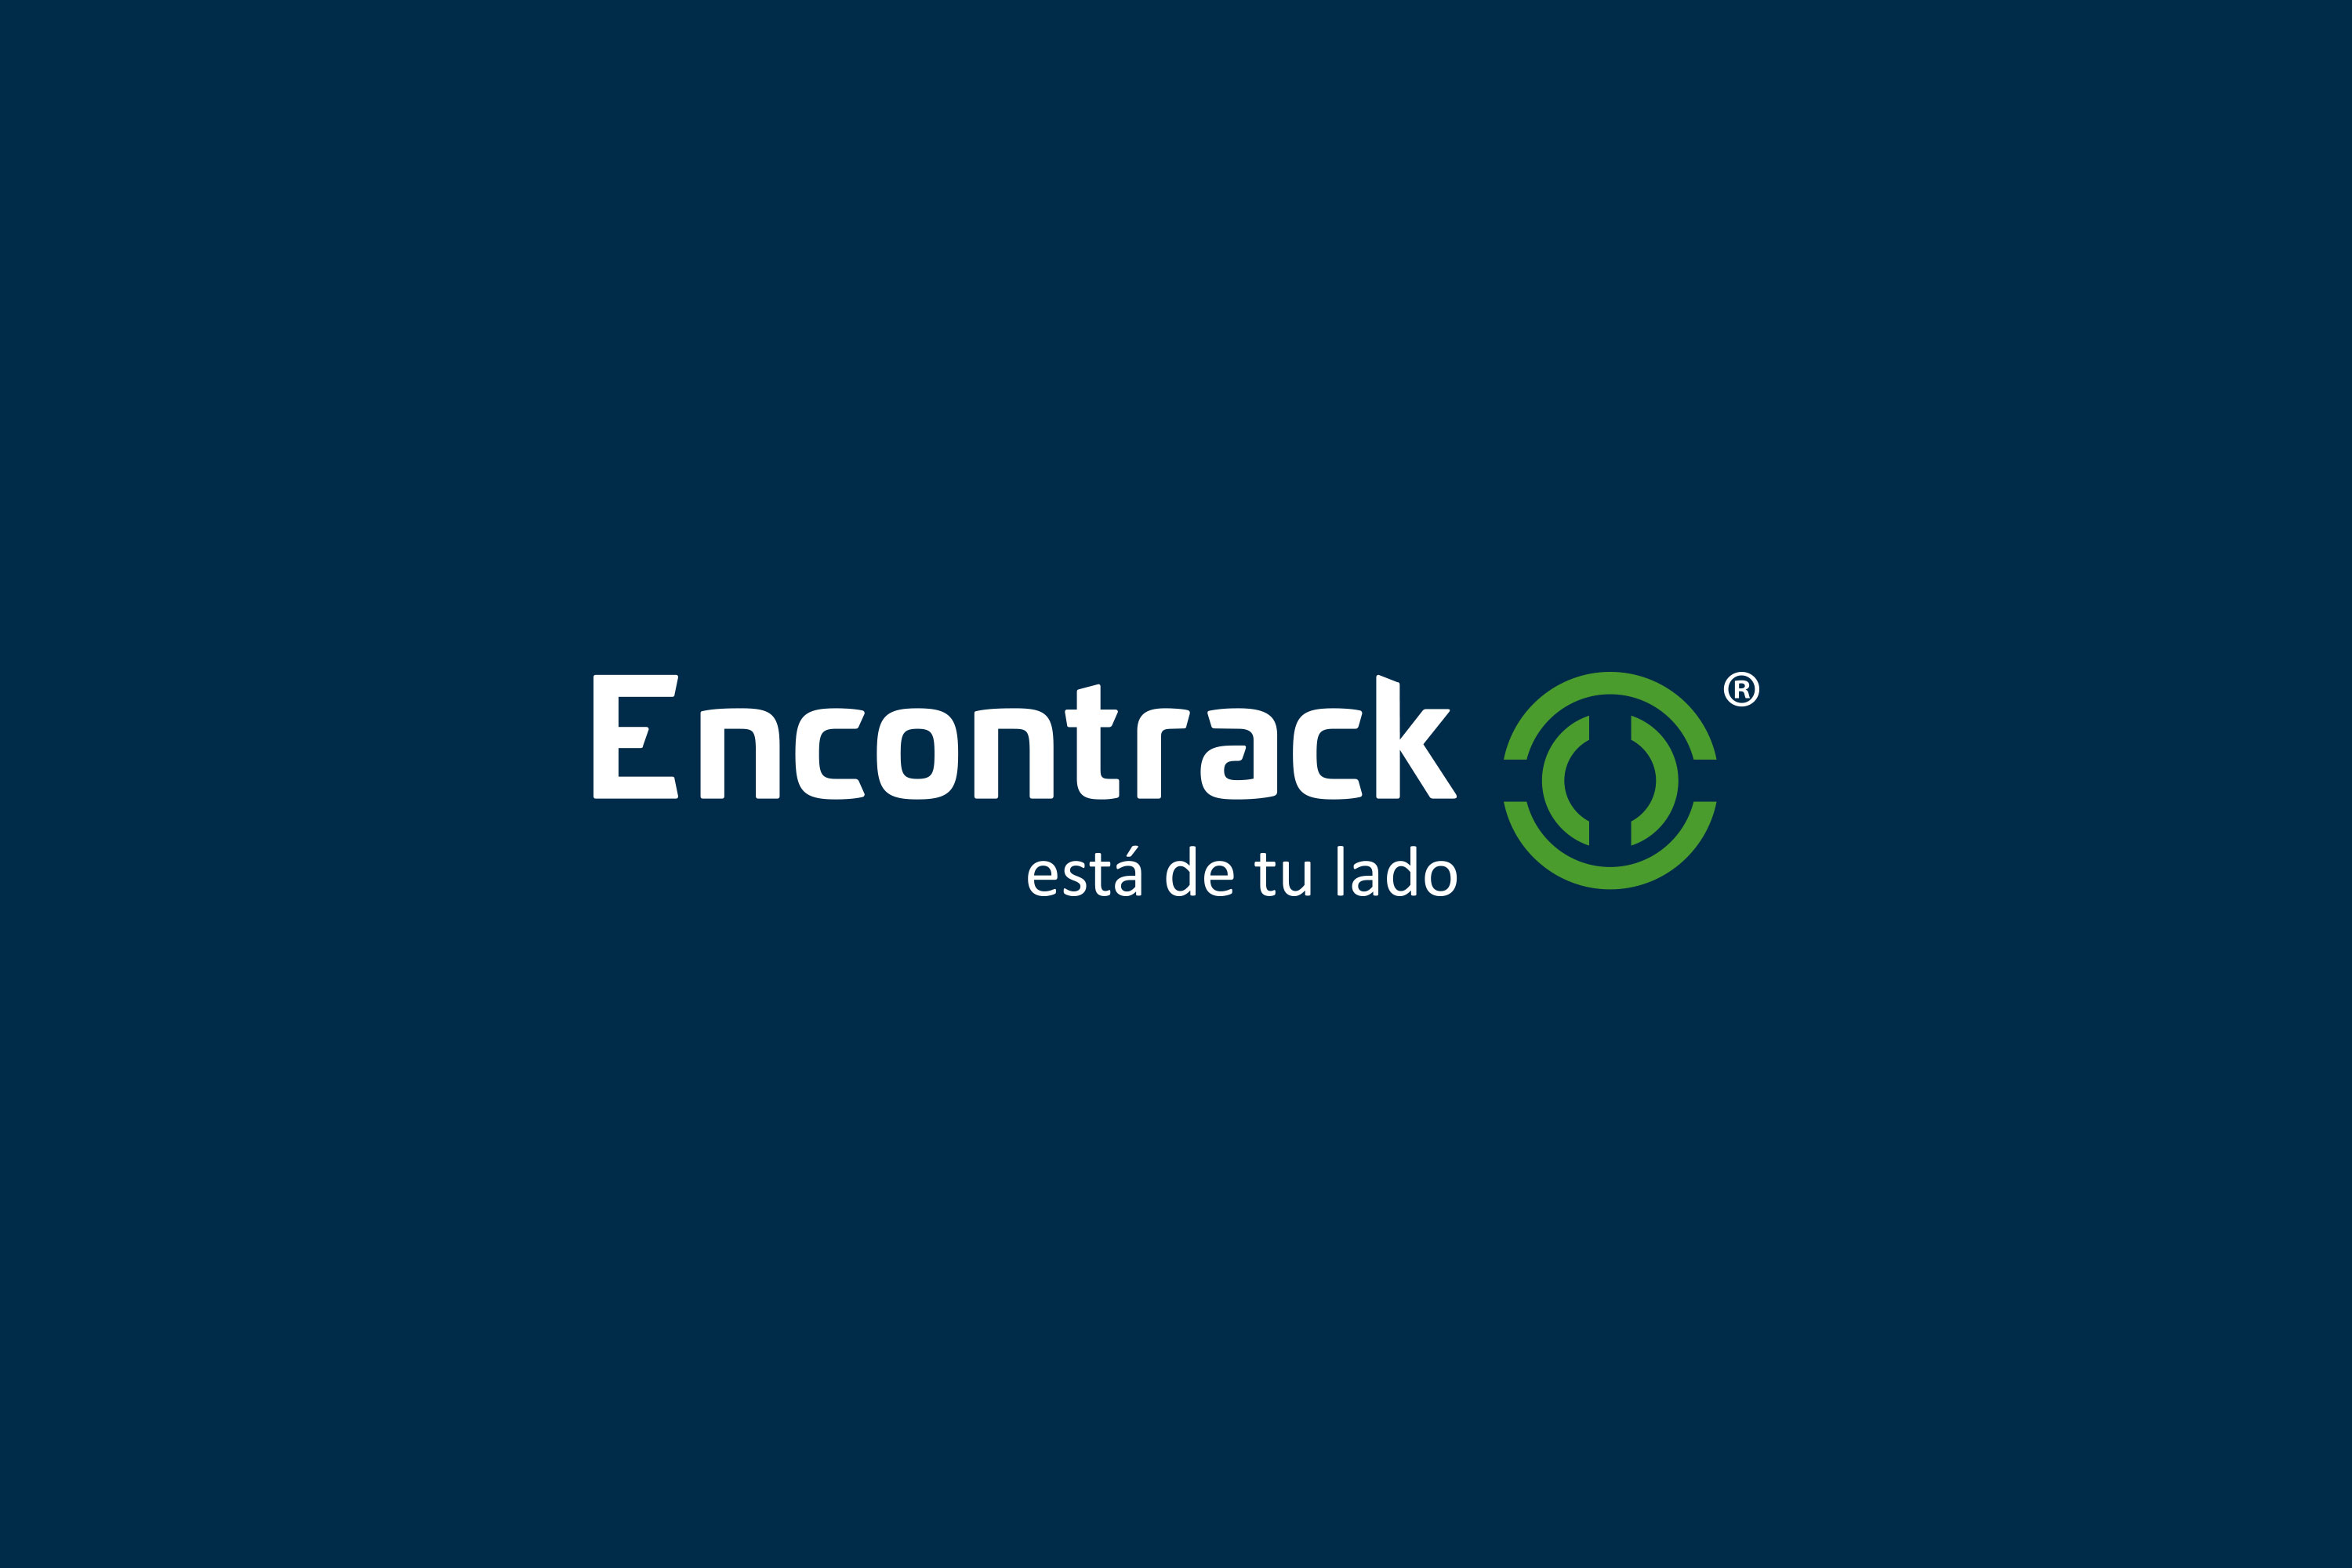 02-logo-encontrack